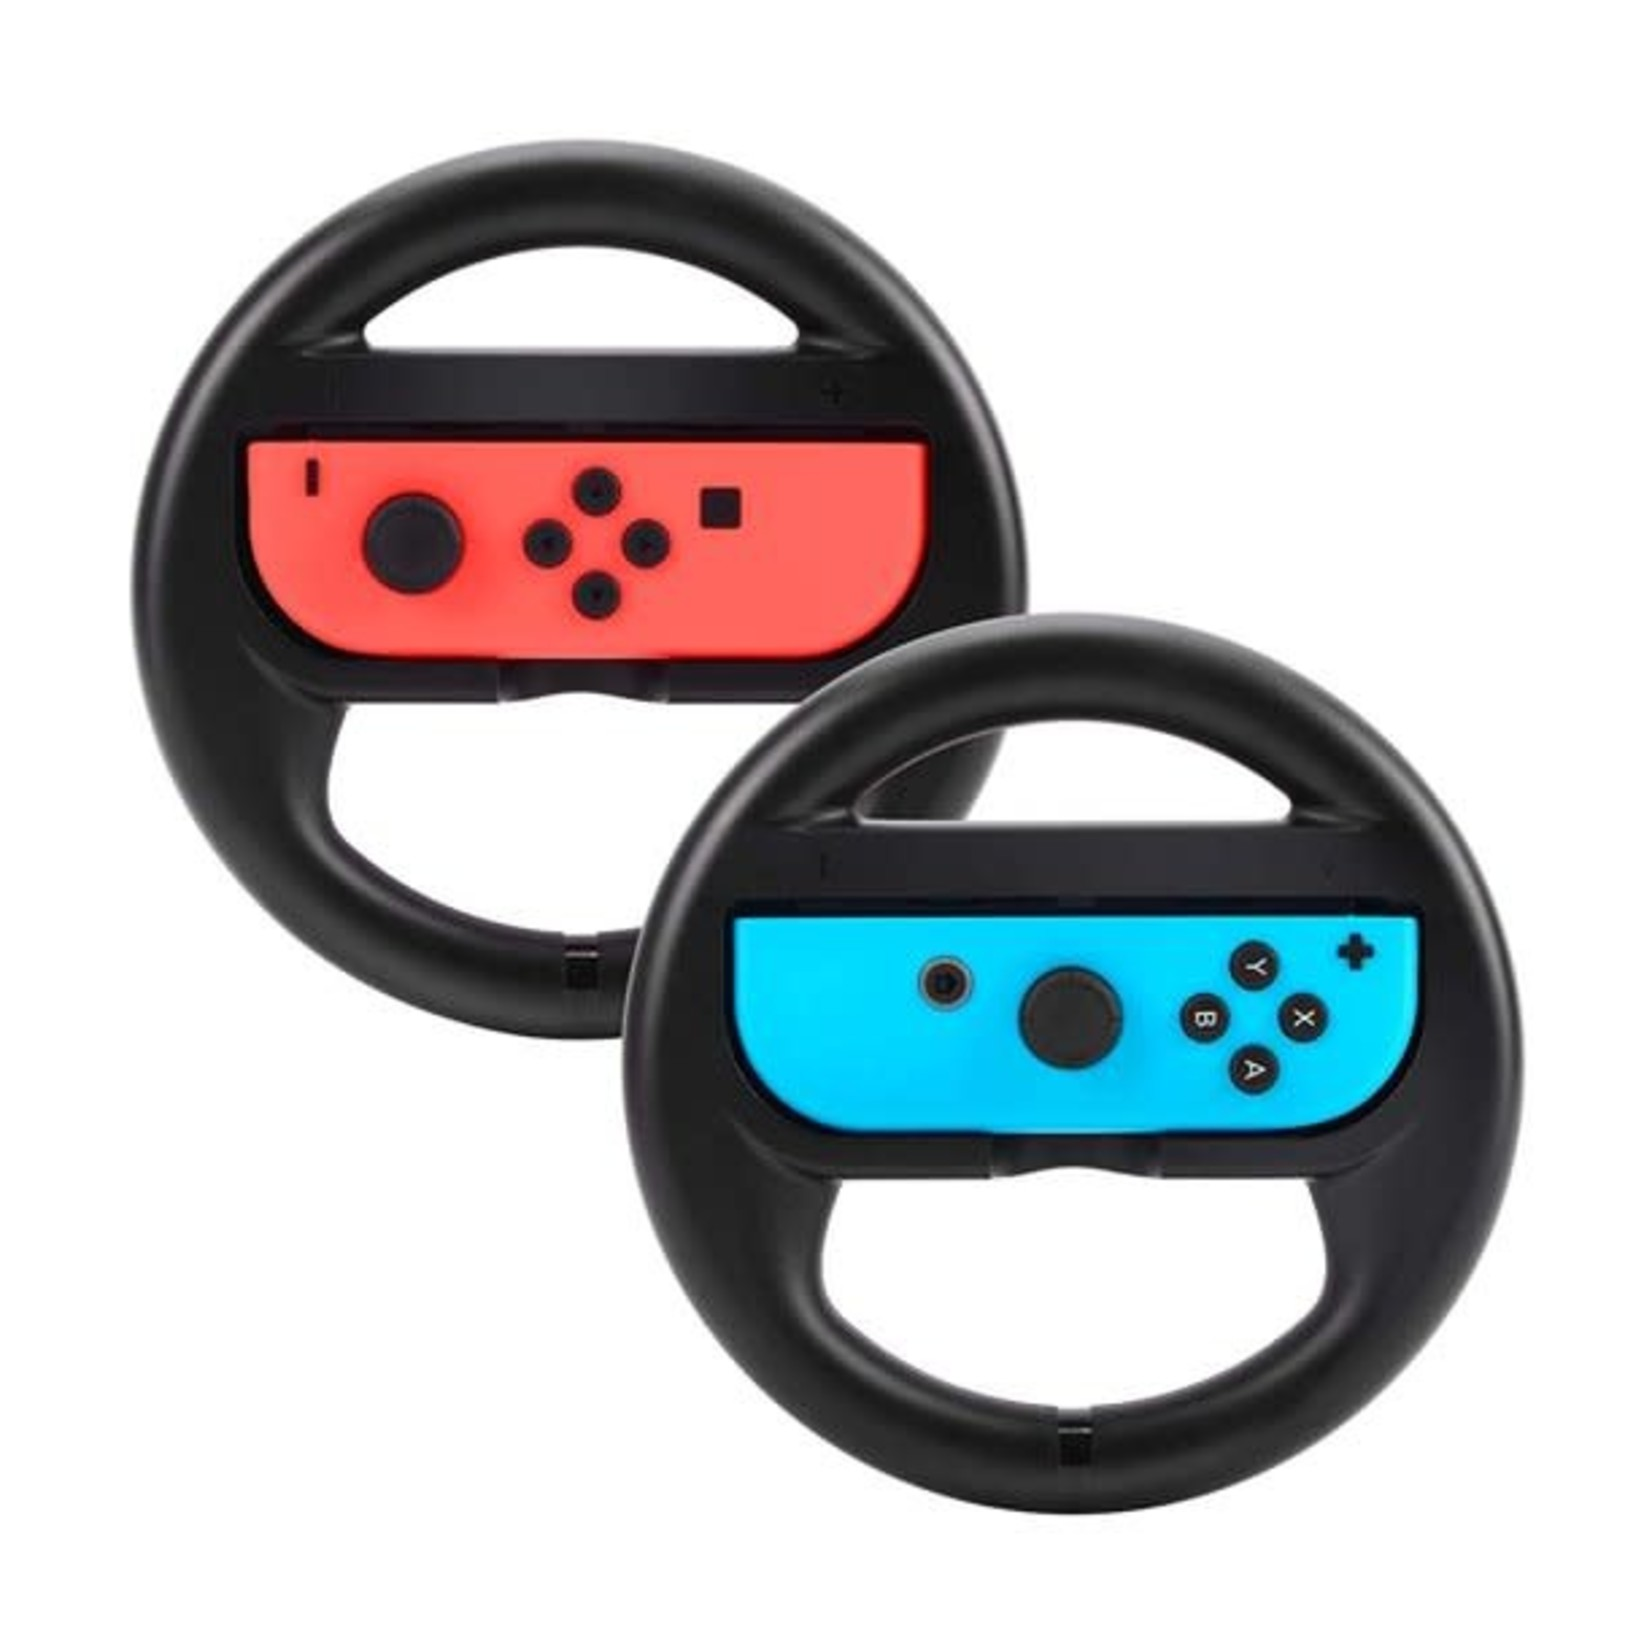 SWITCH-Racing Wheel 2 Pack